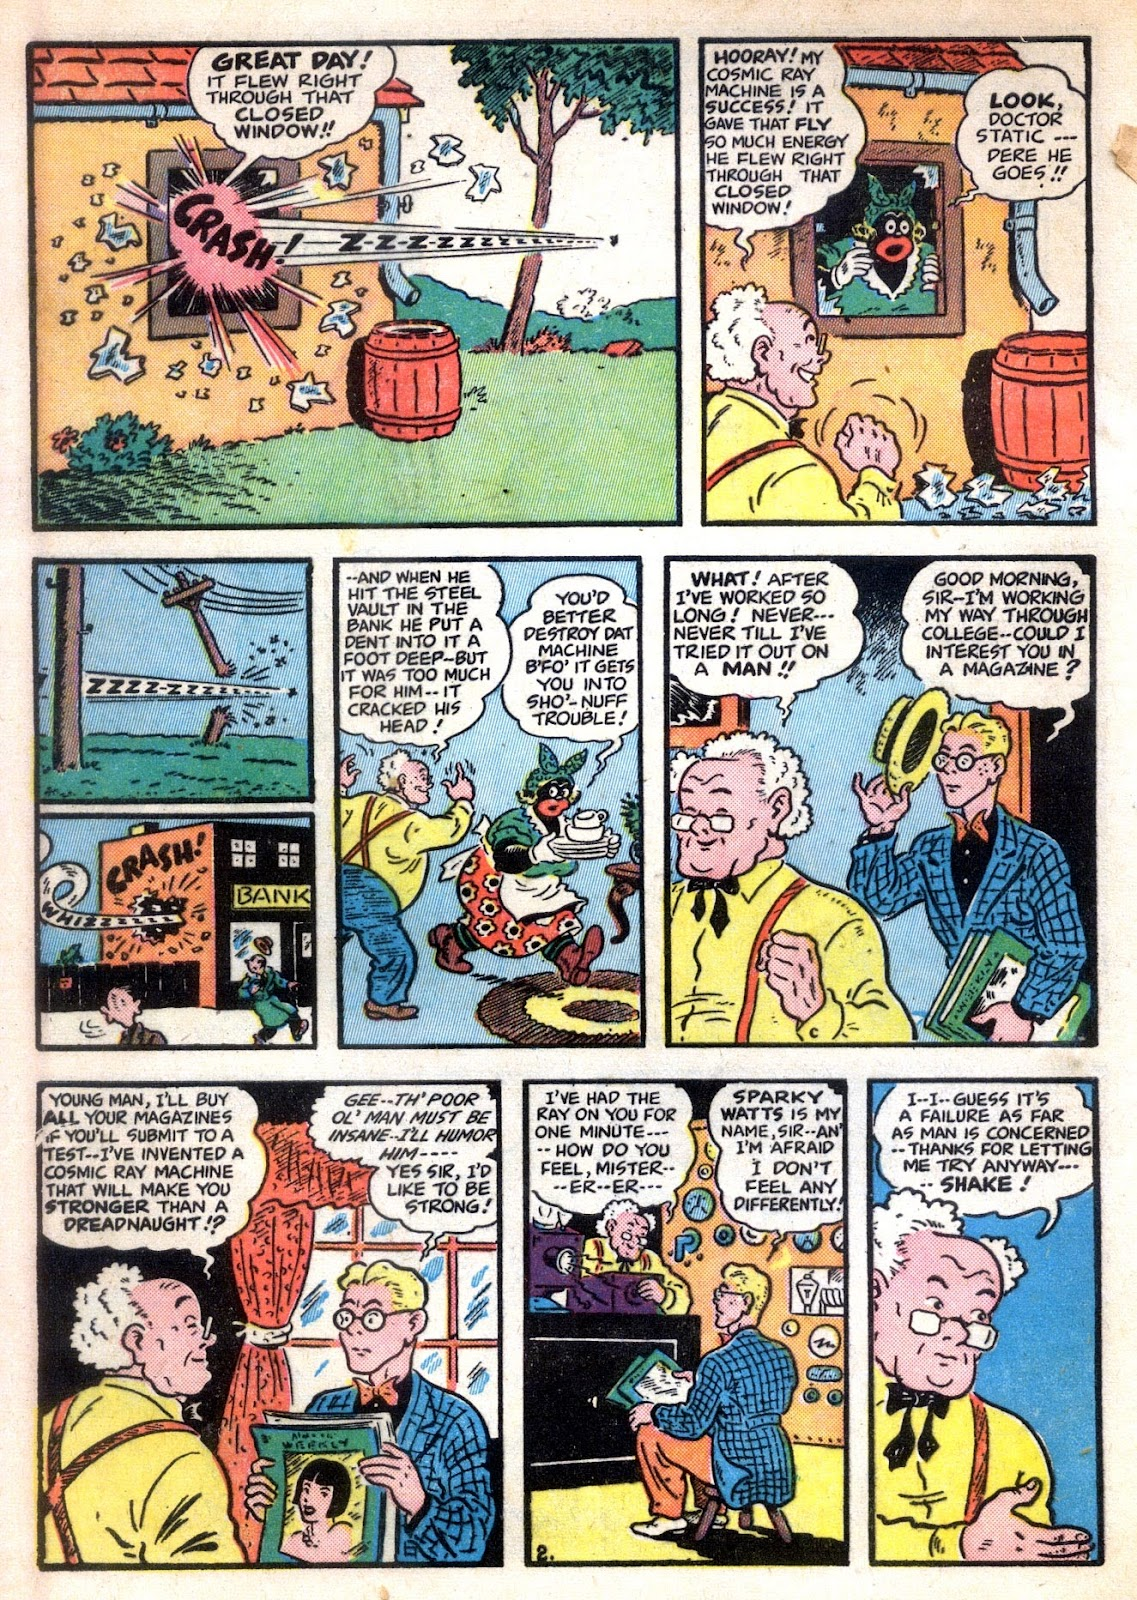 Sparky Watts issue 4 - Page 4